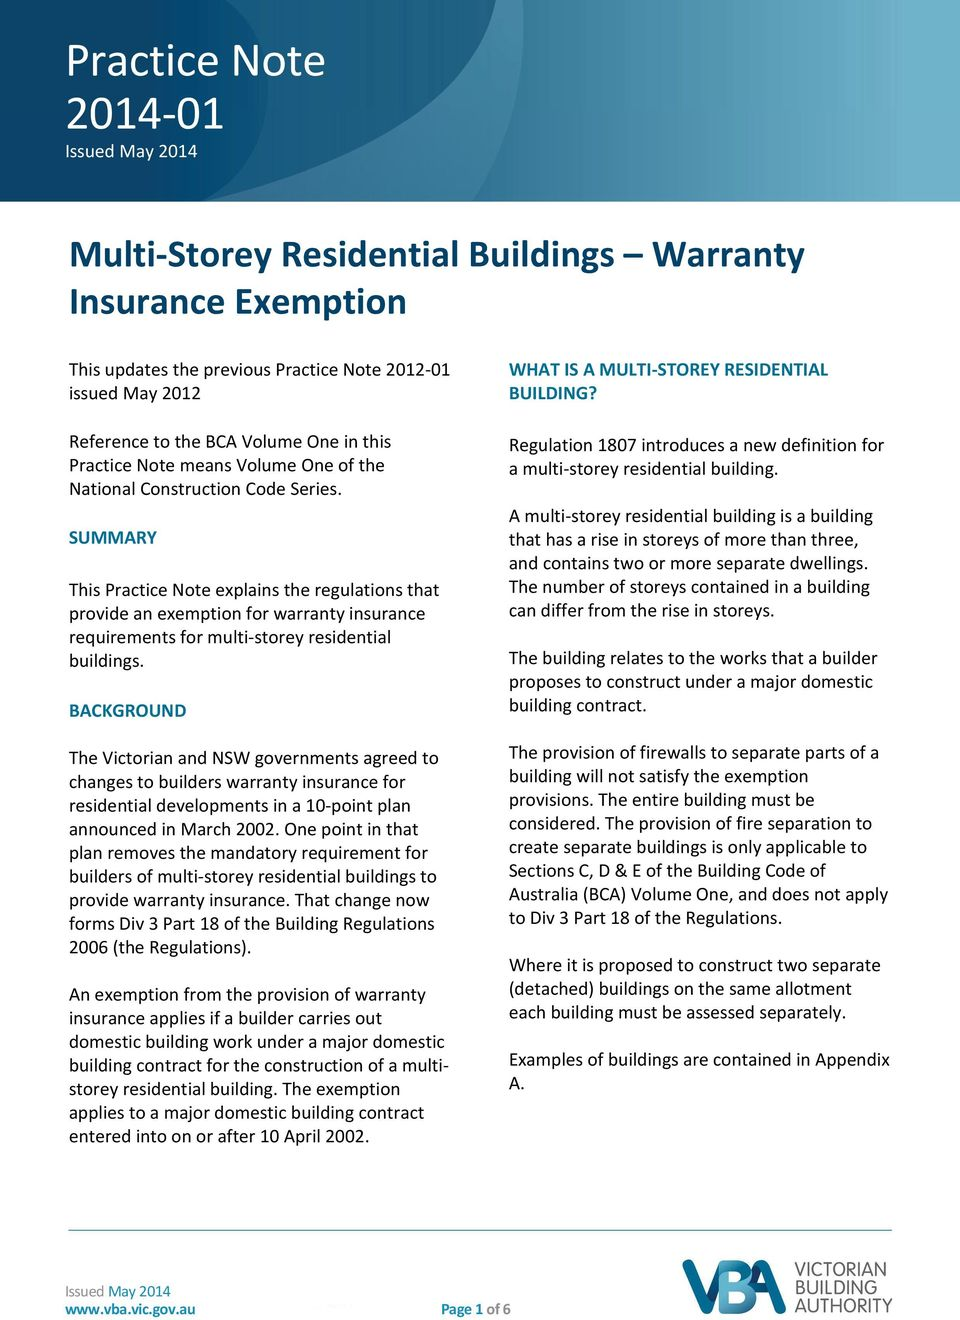 SUMMARY This Practice Note explains the regulations that provide an exemption for warranty insurance requirements for multi-storey residential buildings.